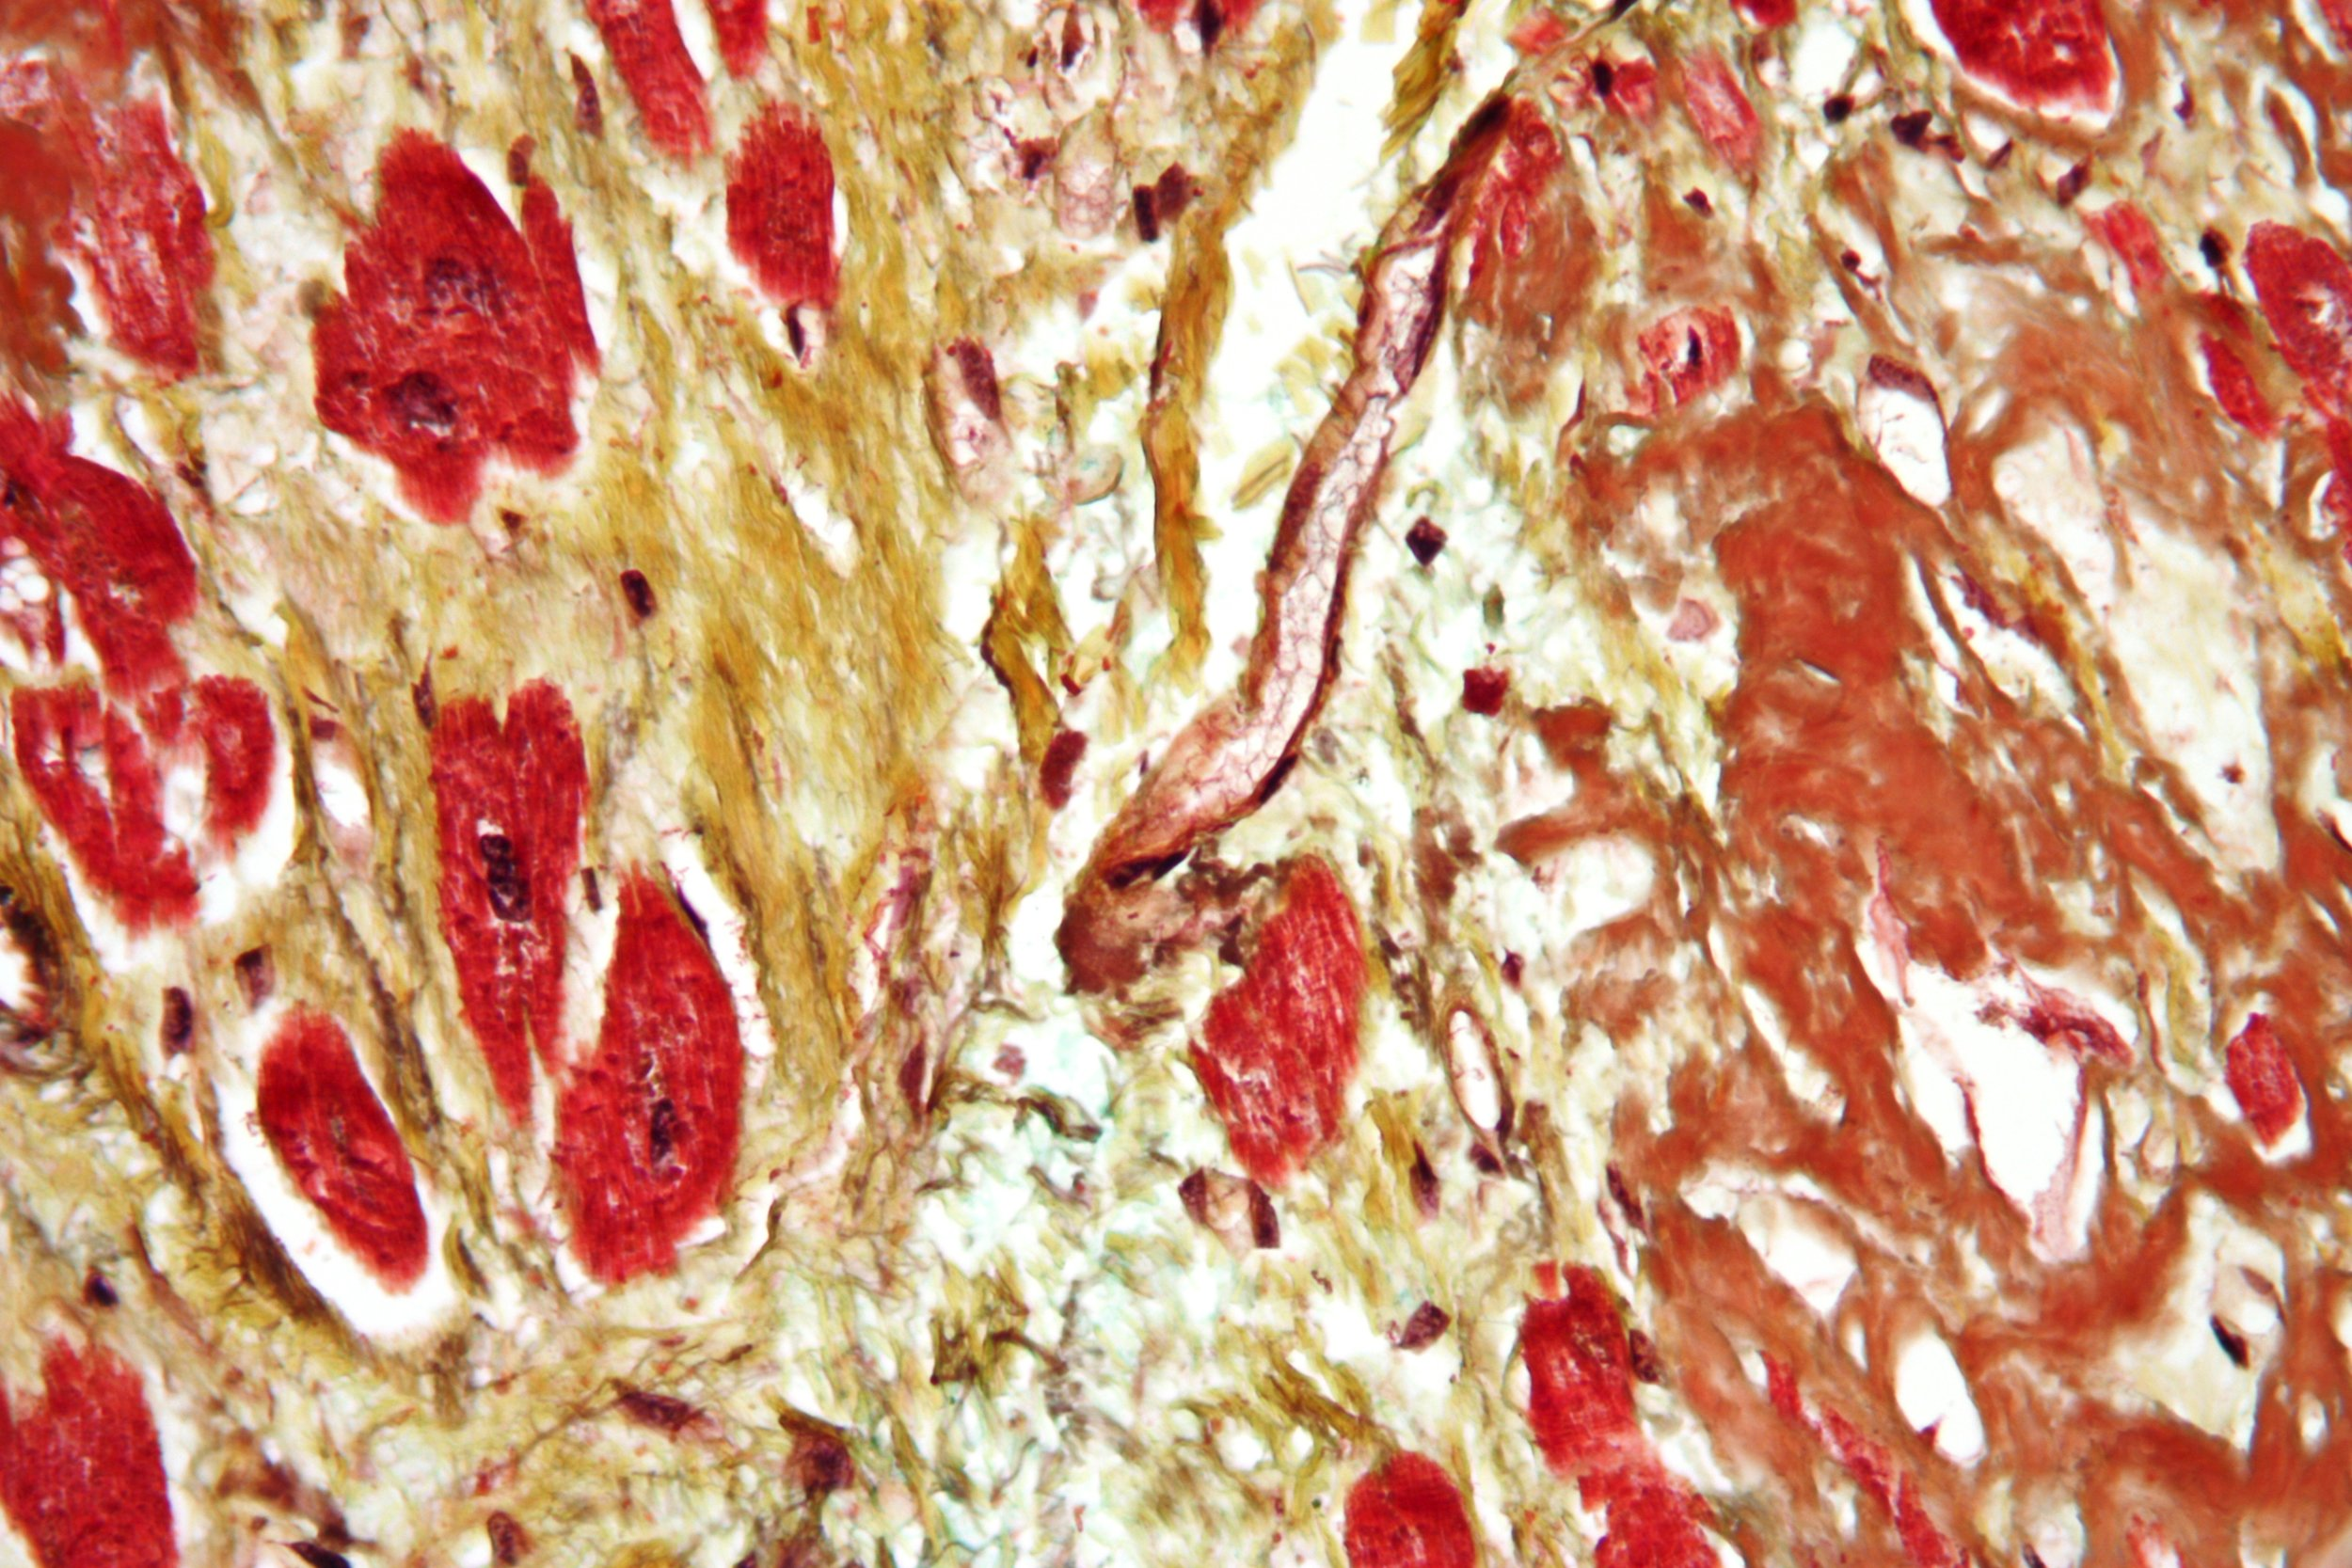 Micrograph of a heart with fibrosis (yellow)